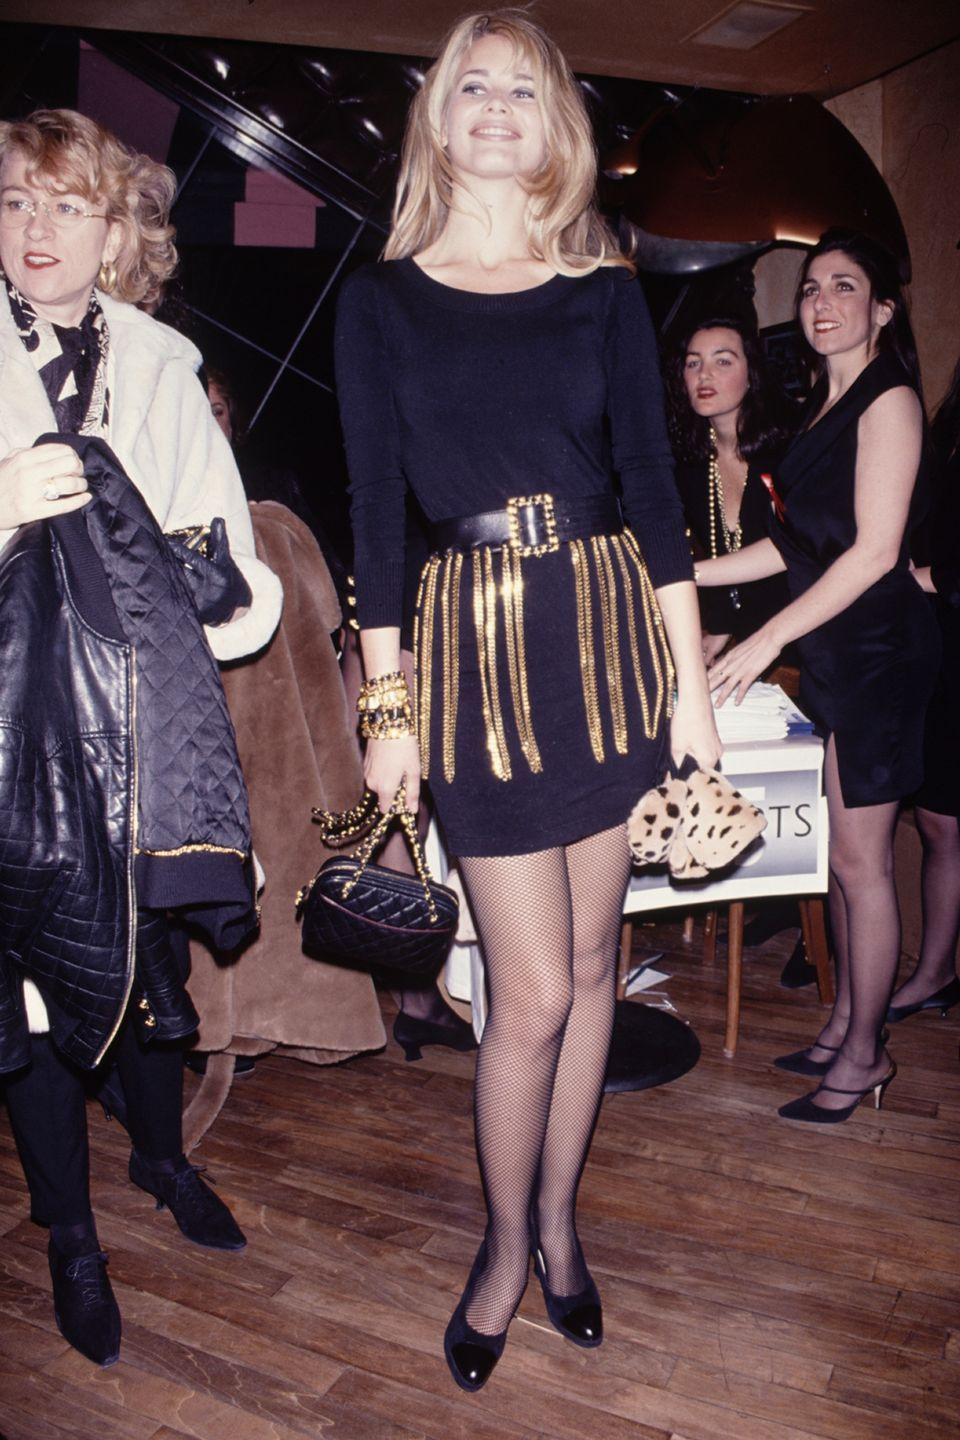 <p>All about the accessories! I'm wearing classic Chanel little black dress with an incredible Chanel gold buckled chain belt complete with matching gold cuff bracelet and gold chained shoulder bag</p>